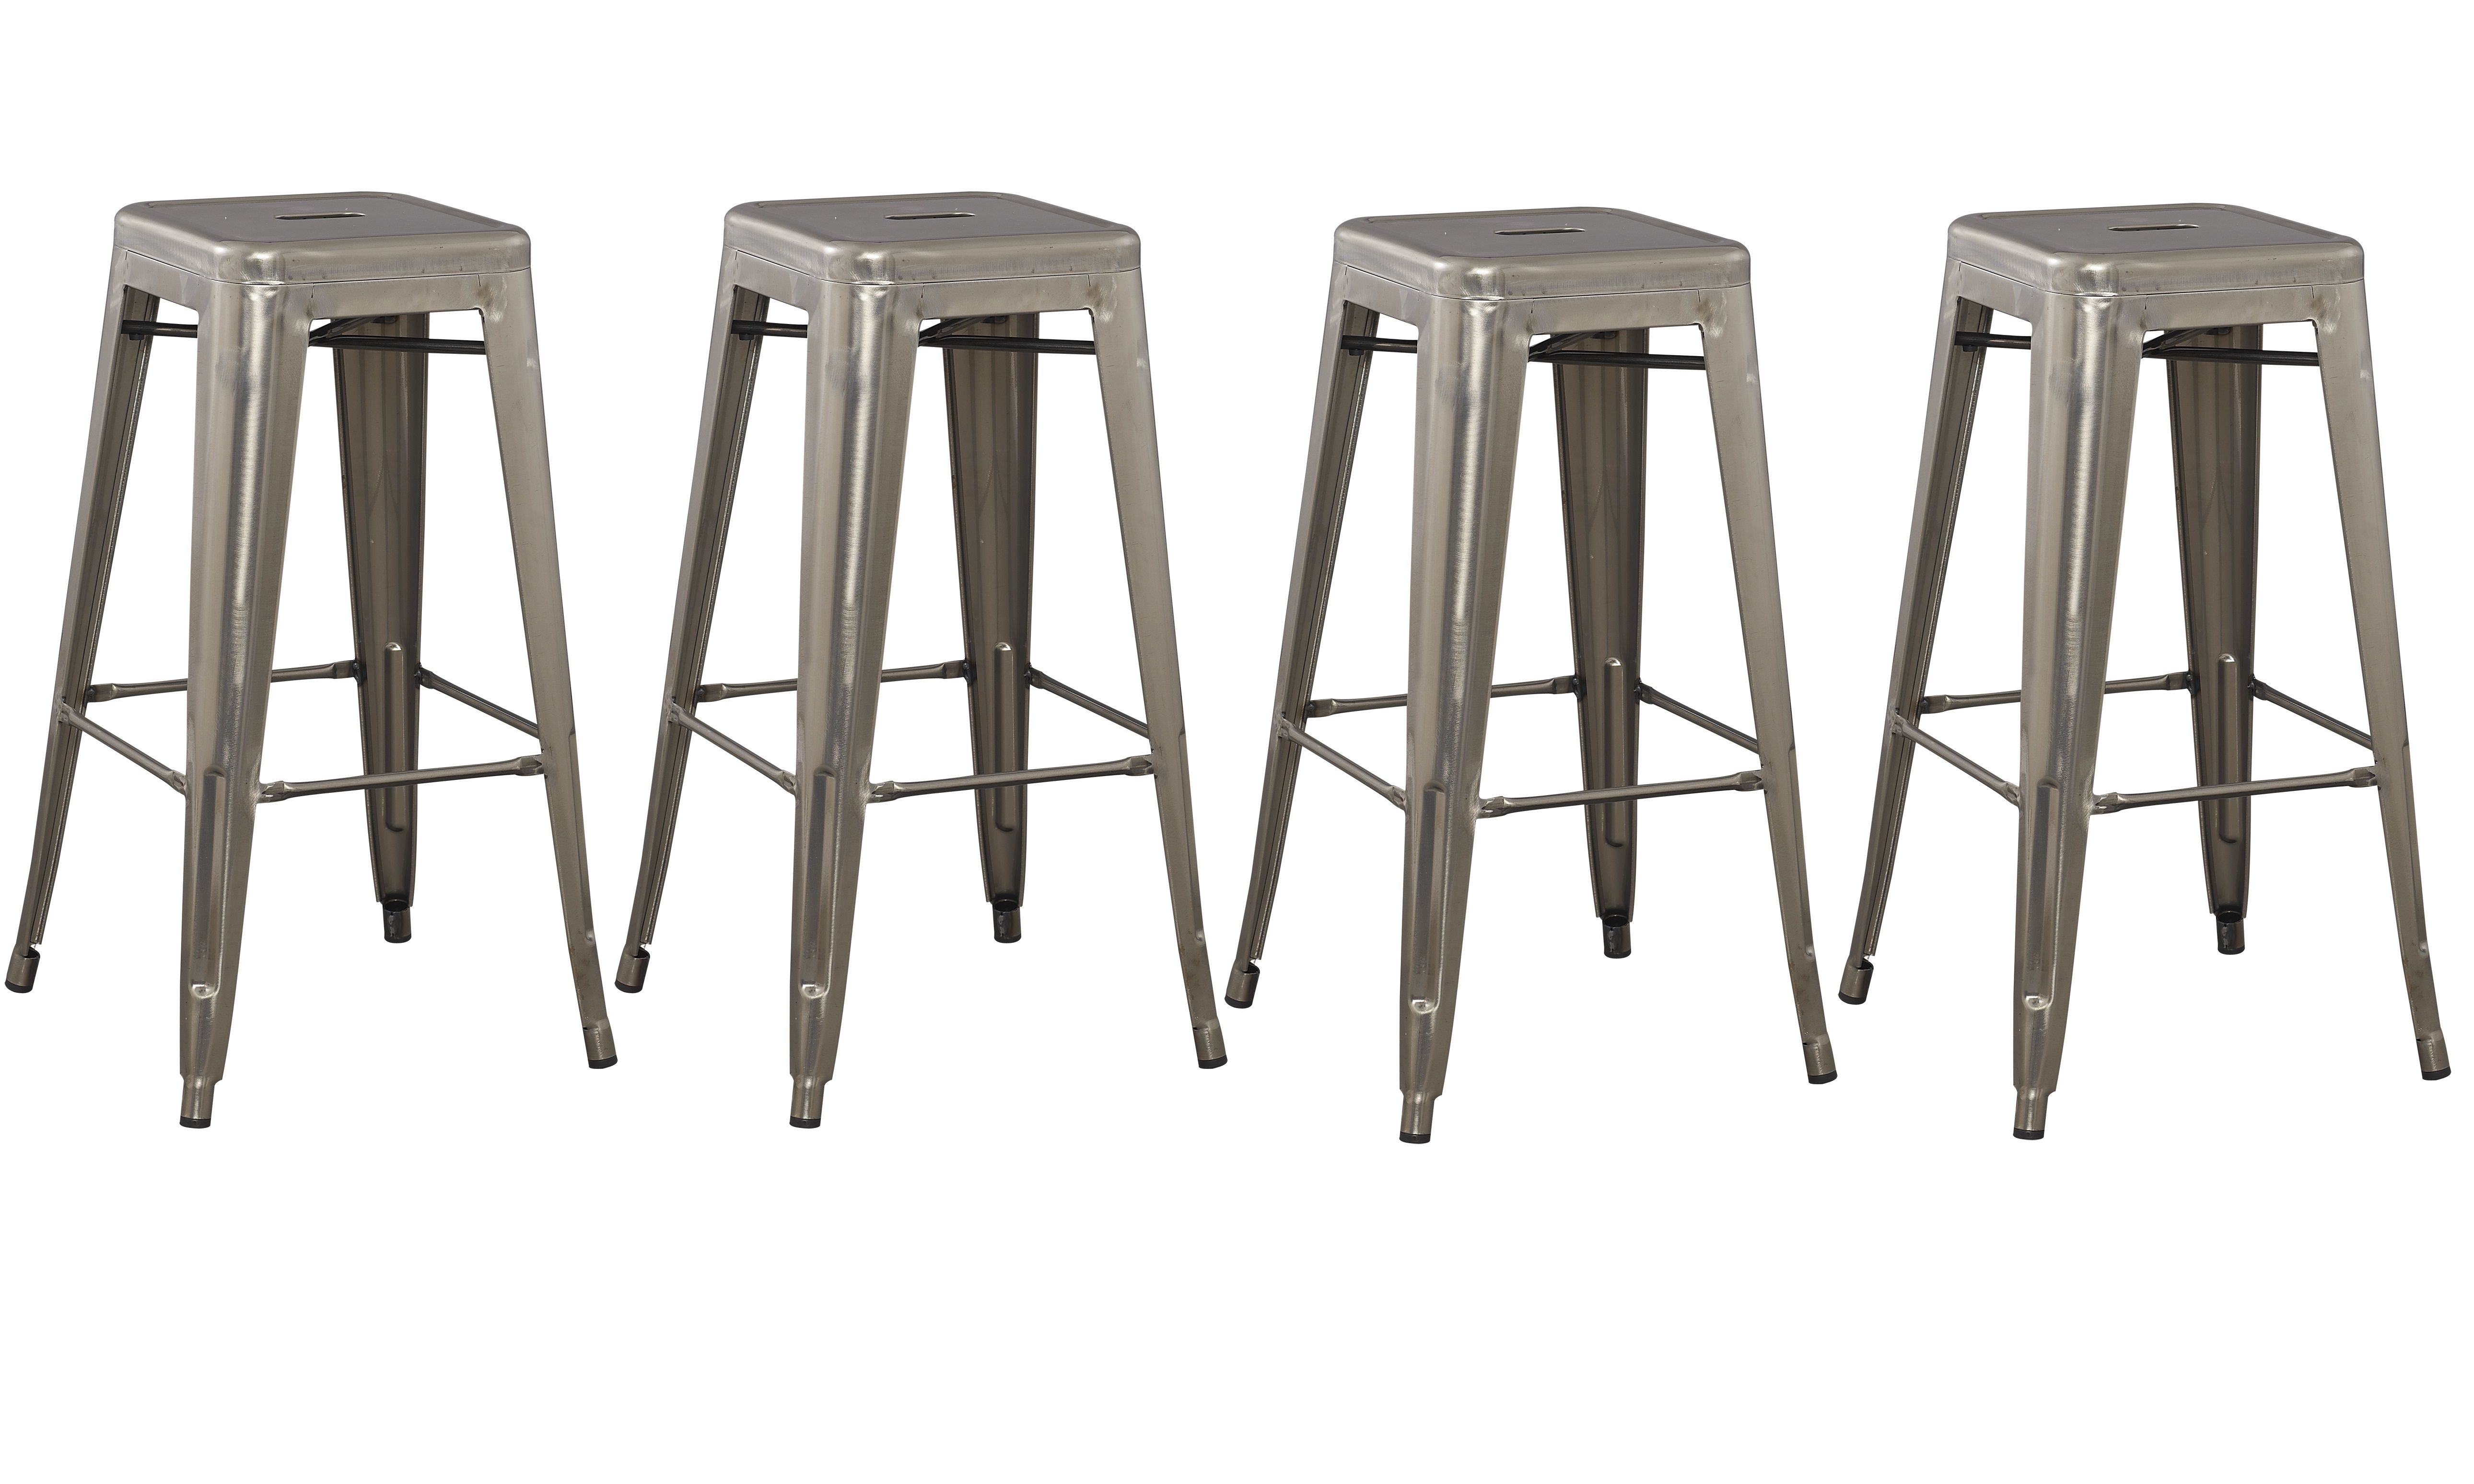 30 inch Solid Steel Stacking Industrial Distressed Stain Metal Tabouret Dining…